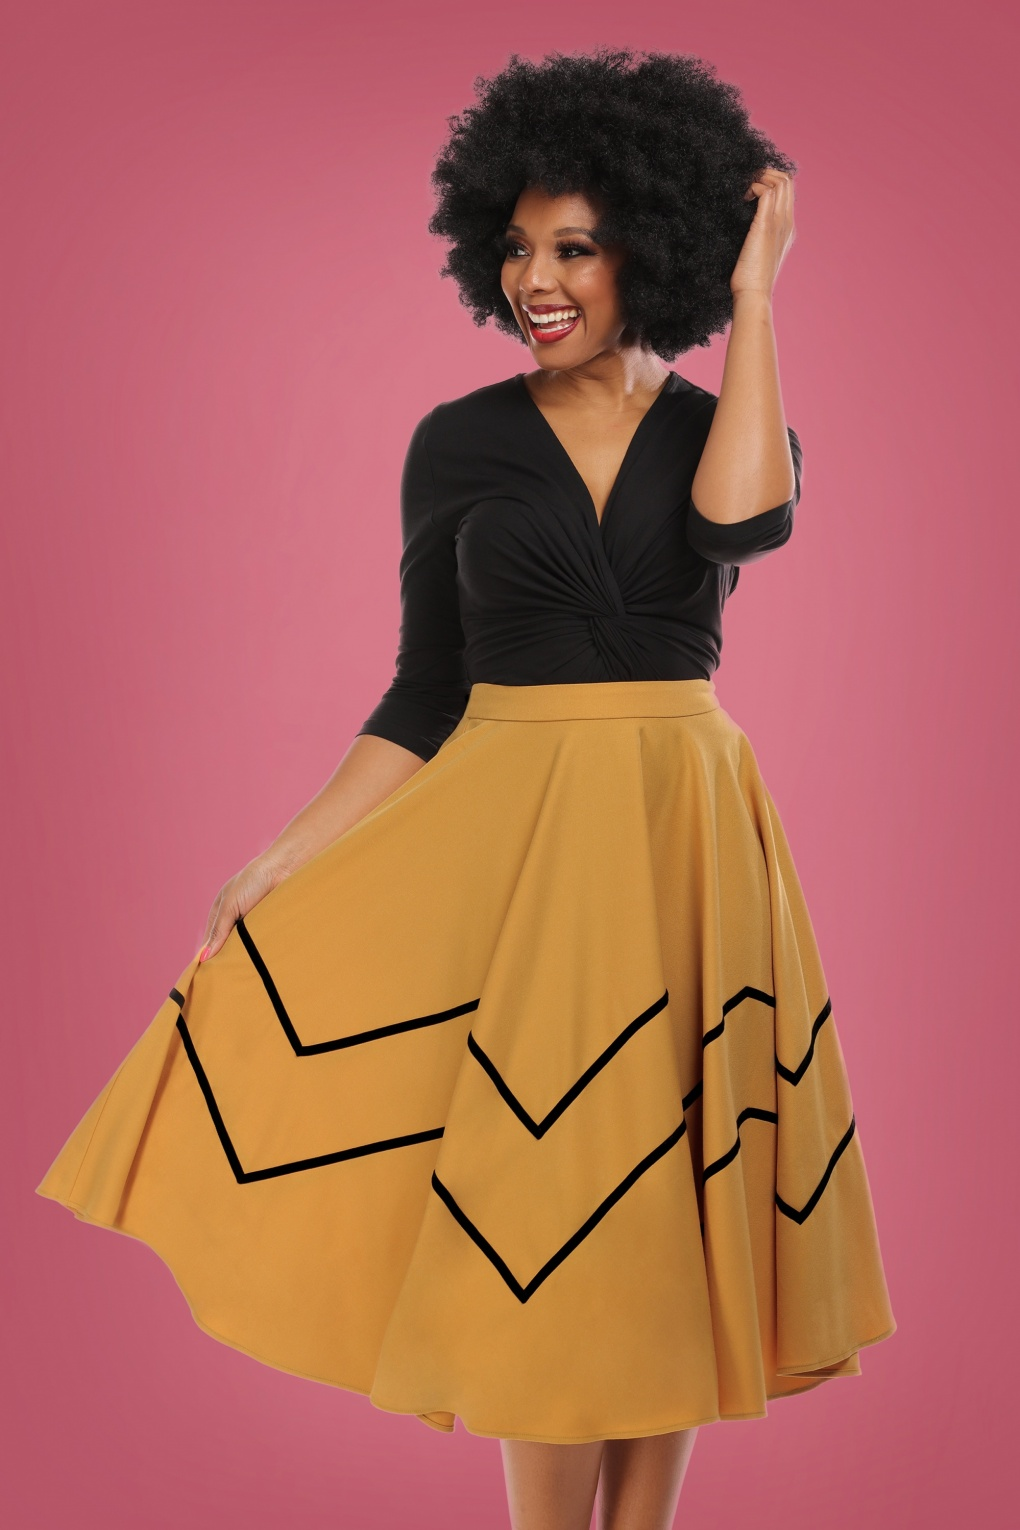 50s Skirt Styles | Poodle Skirts, Circle Skirts, Pencil Skirts 1950s 50s Milla Swing Skirt in Mustard £63.86 AT vintagedancer.com